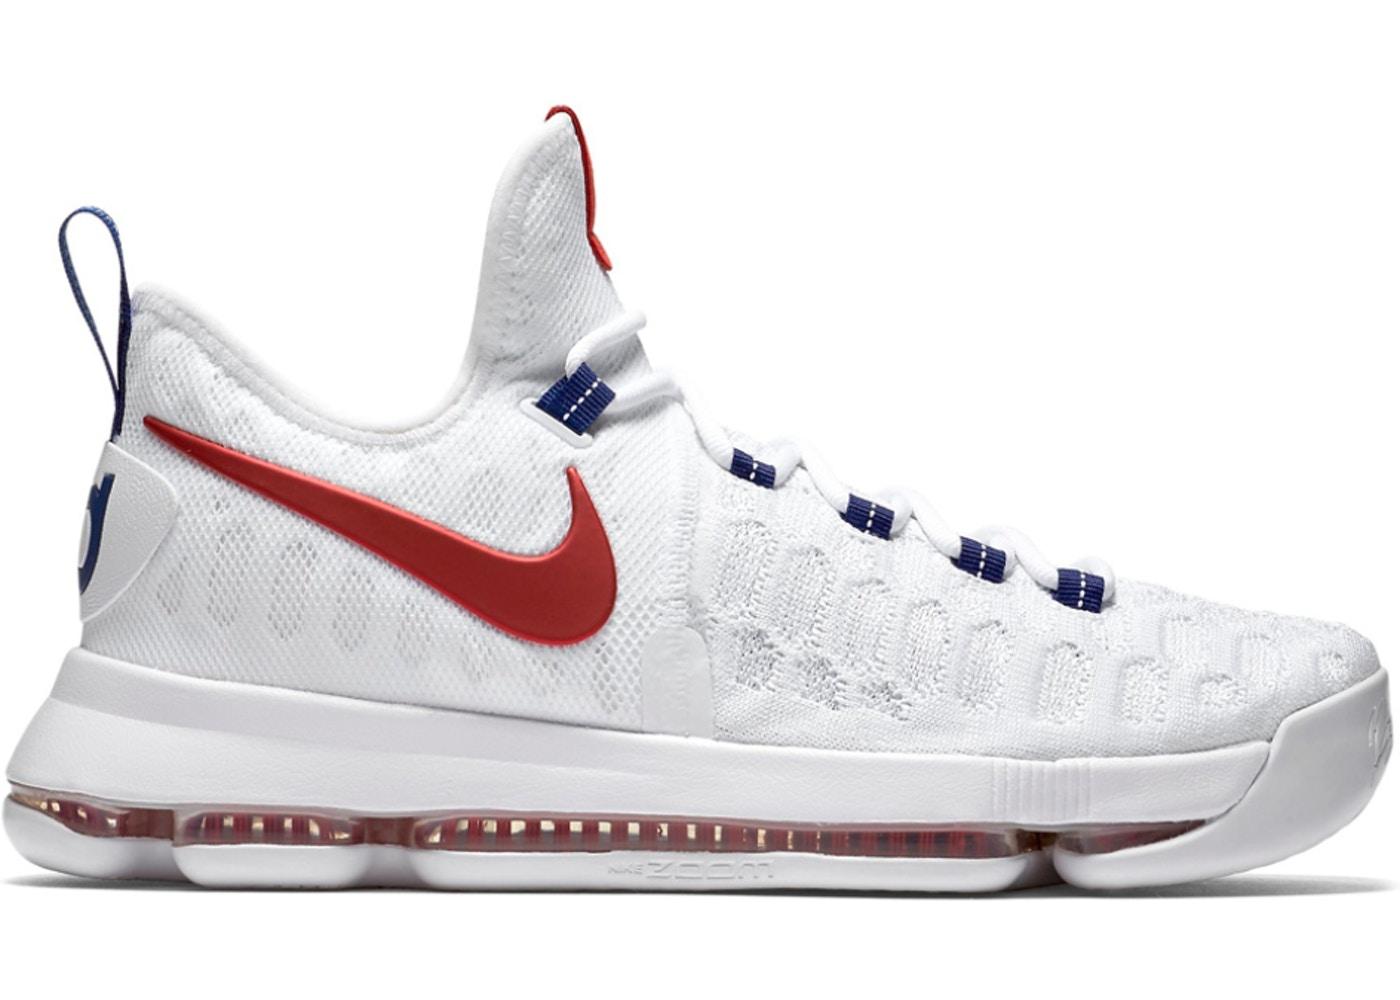 new style 9ae26 5d55c Buy Nike KD 9 Shoes & Deadstock Sneakers